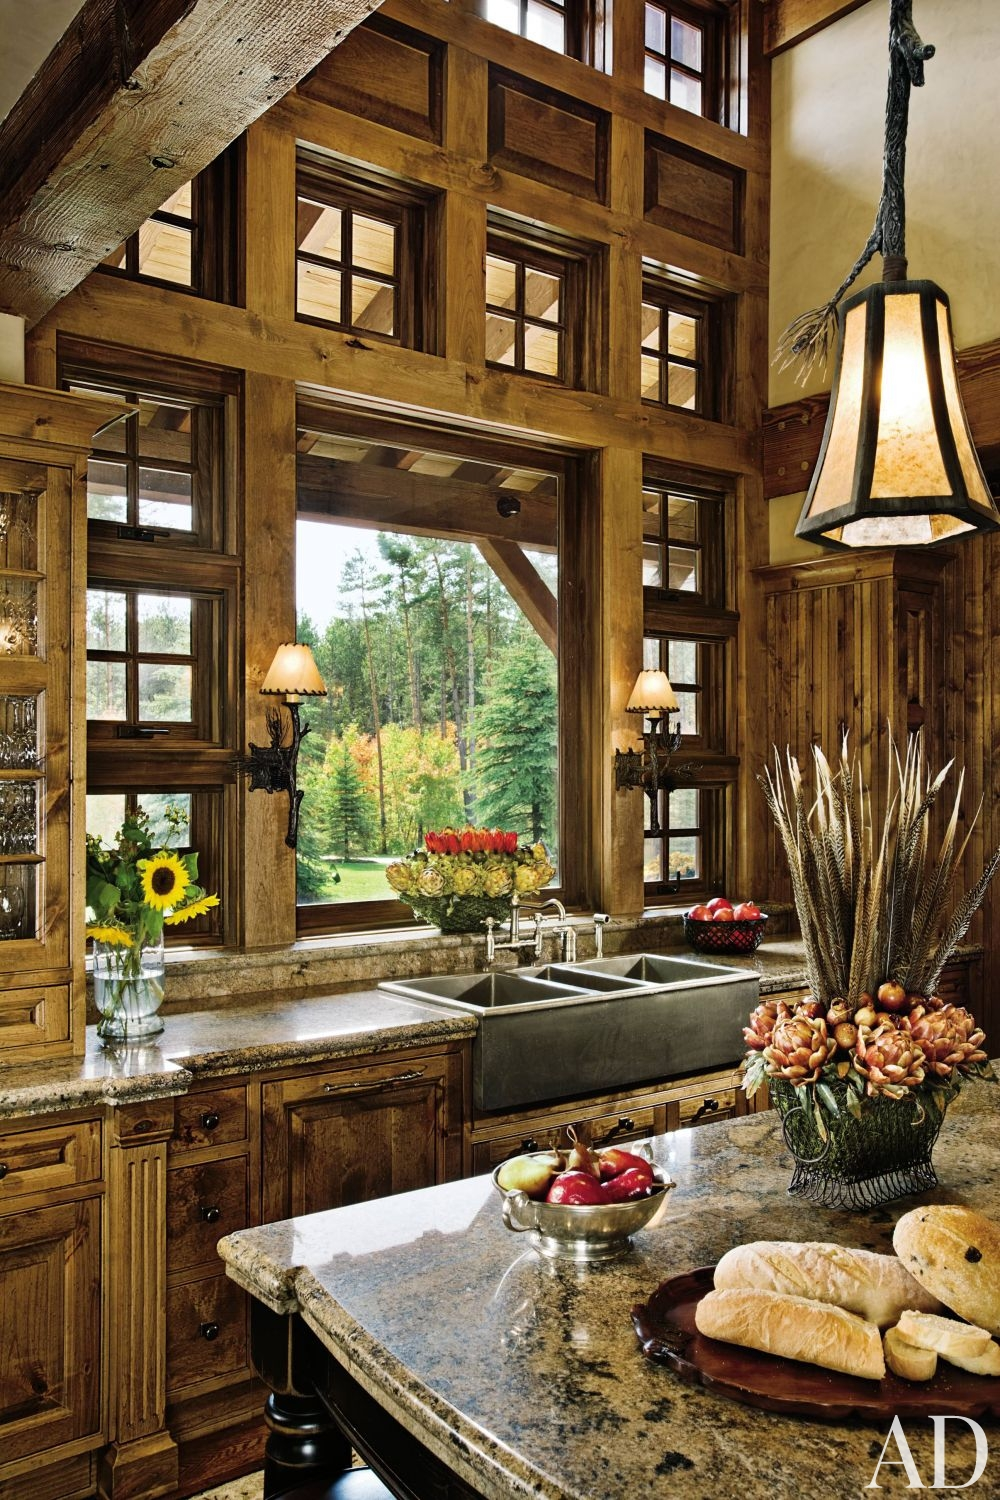 Interior Design For Kitchen: Bring In The Outdoors With These Simple